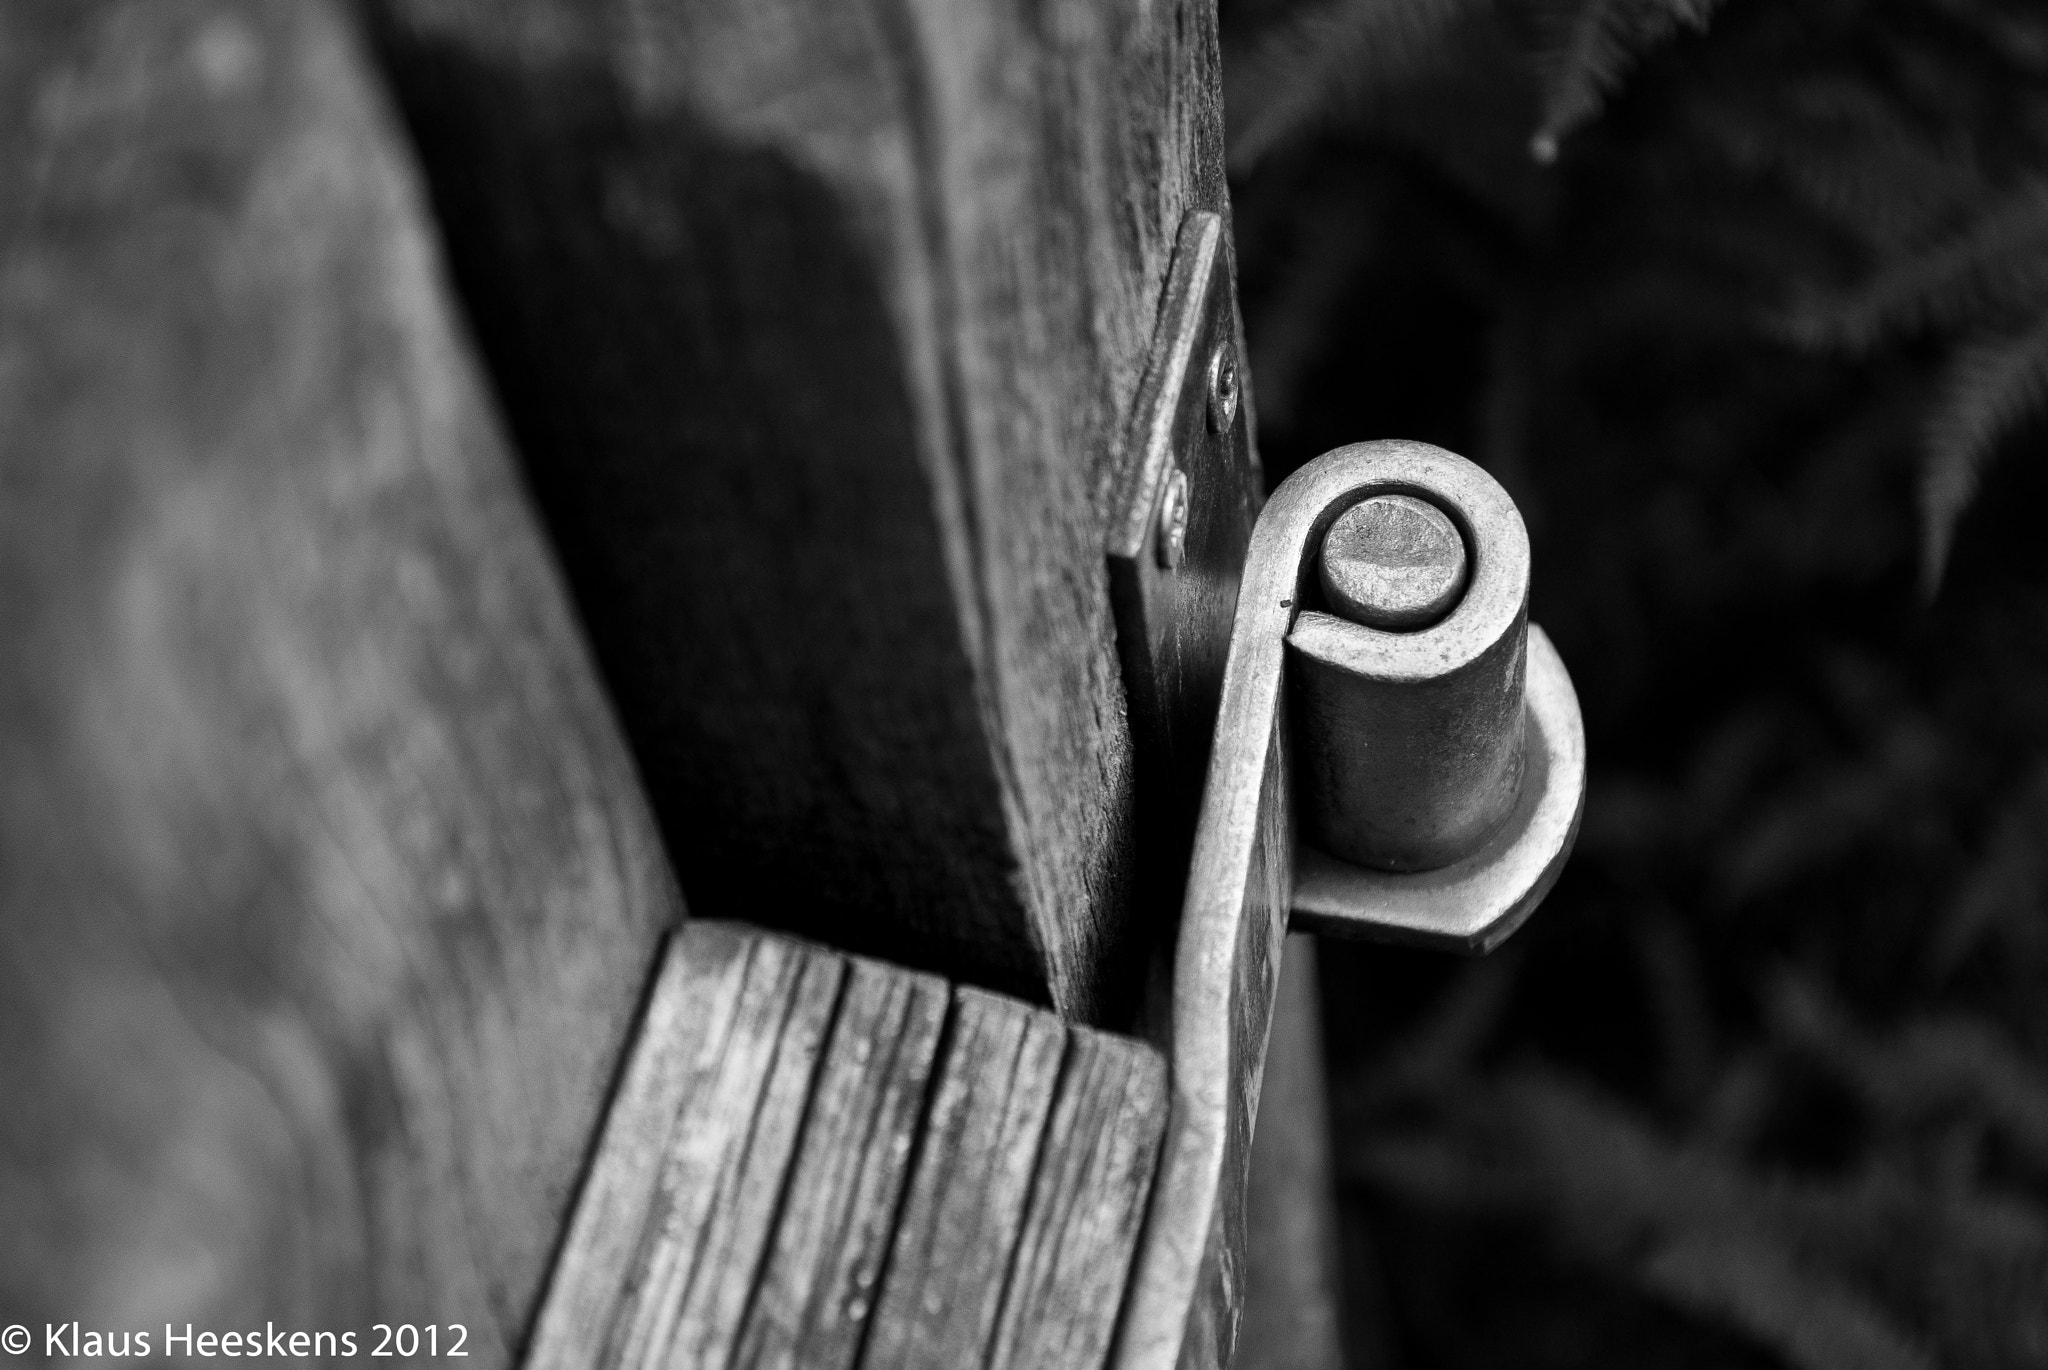 Photograph Hinge by Klaus Heeskens on 500px